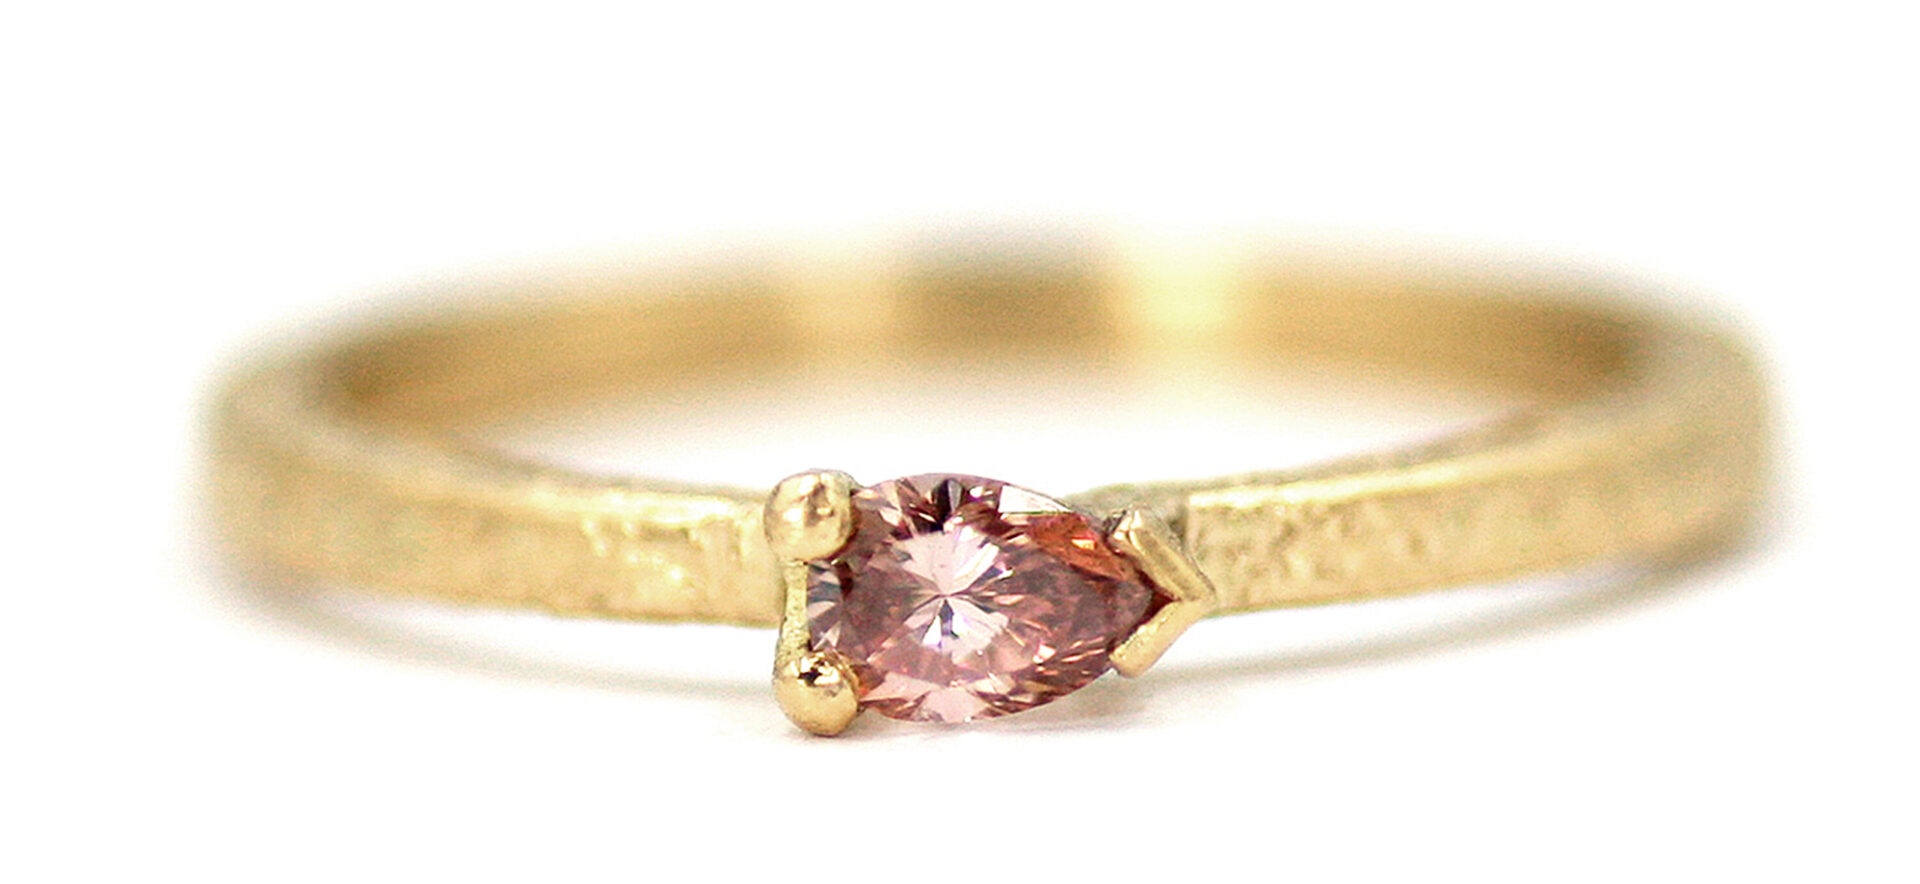 Claires' ring